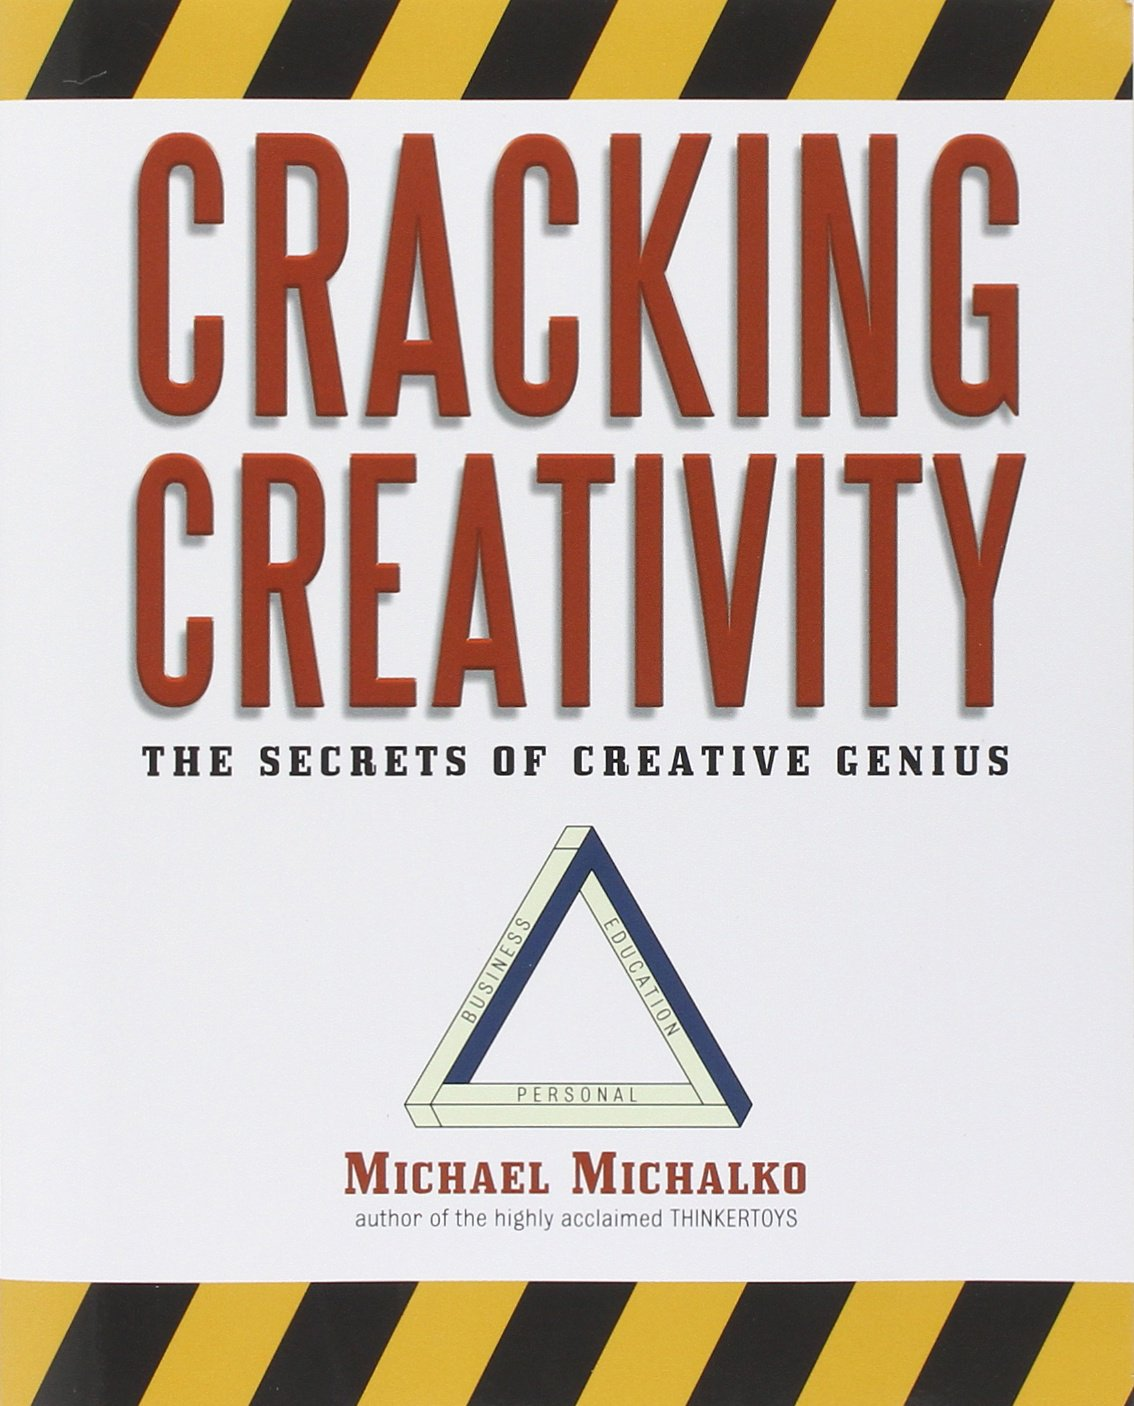 Cracking Creativity Secrets Creative Genius product image